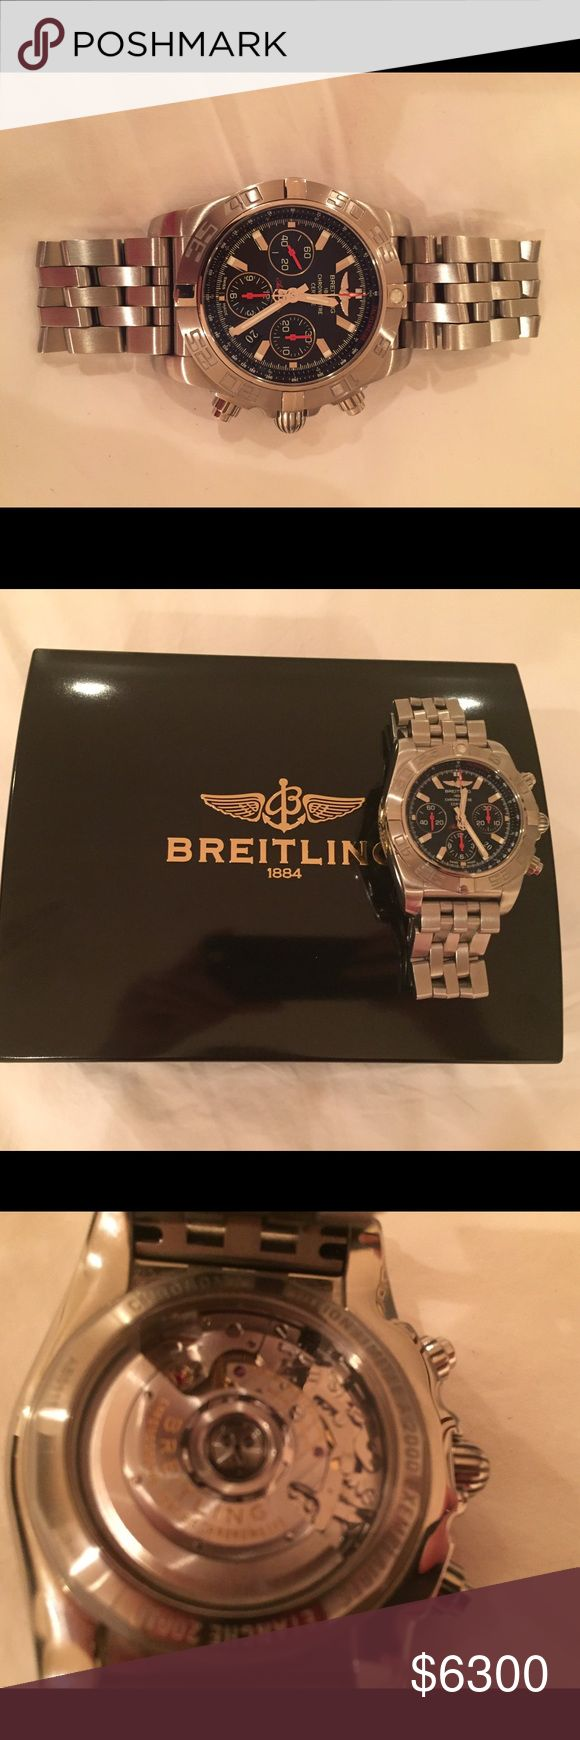 🔱large silver breitling watch🔱 large silver breitling 1884 chronometre limited edition watch (#1619/#2000).. in excellent condition, worn only a few times and comes with box, travel box, manual, and receipt.. Breitling Accessories Watches